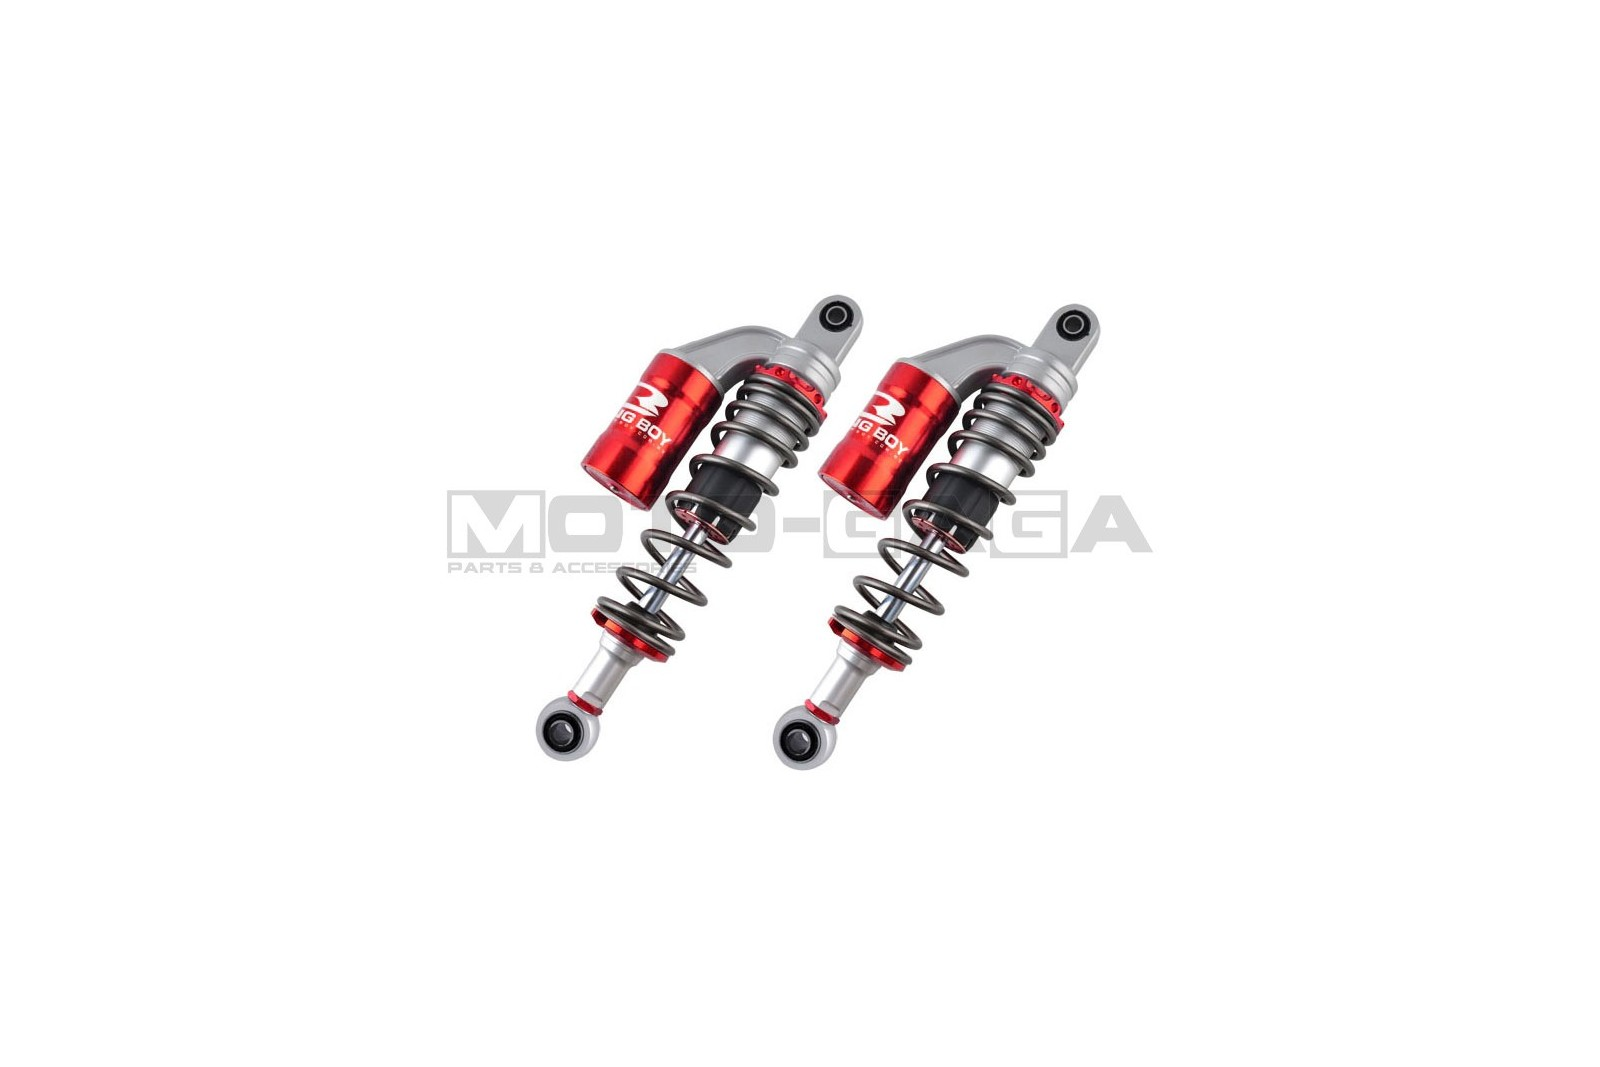 Racing Boy 335mm Shock Absorbers Eb Series